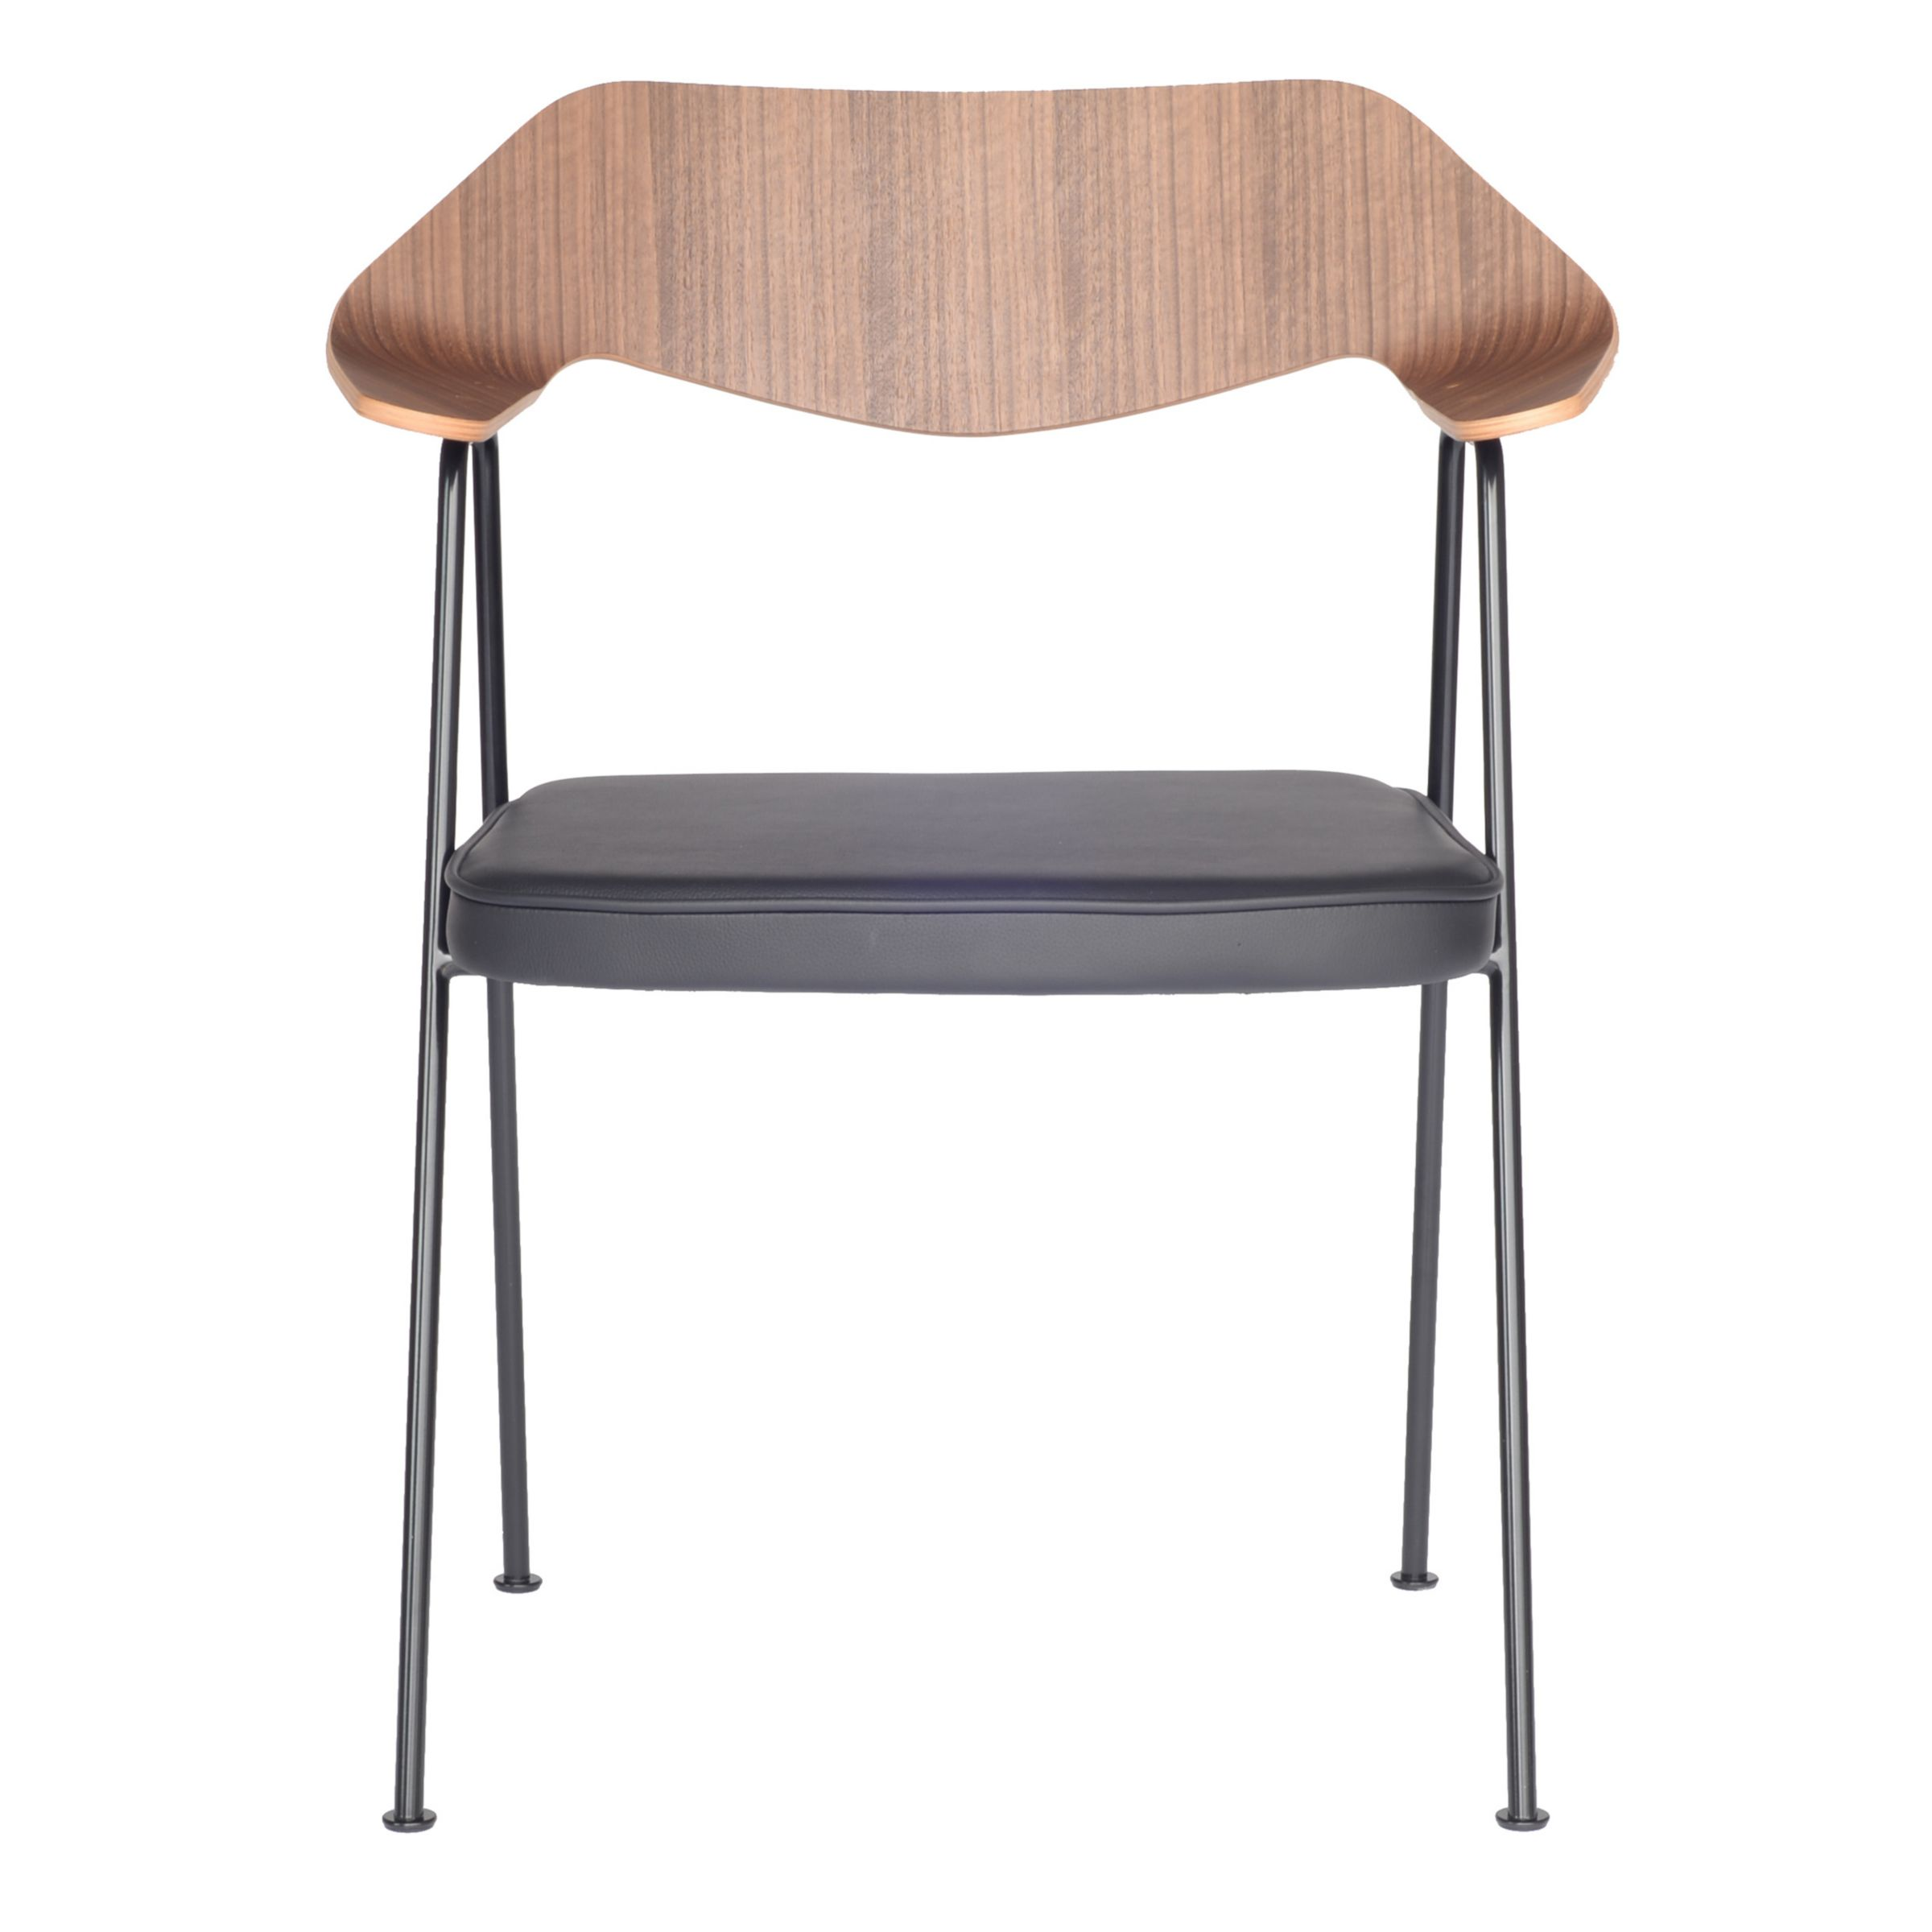 Case Case Robin Day 675 Chair